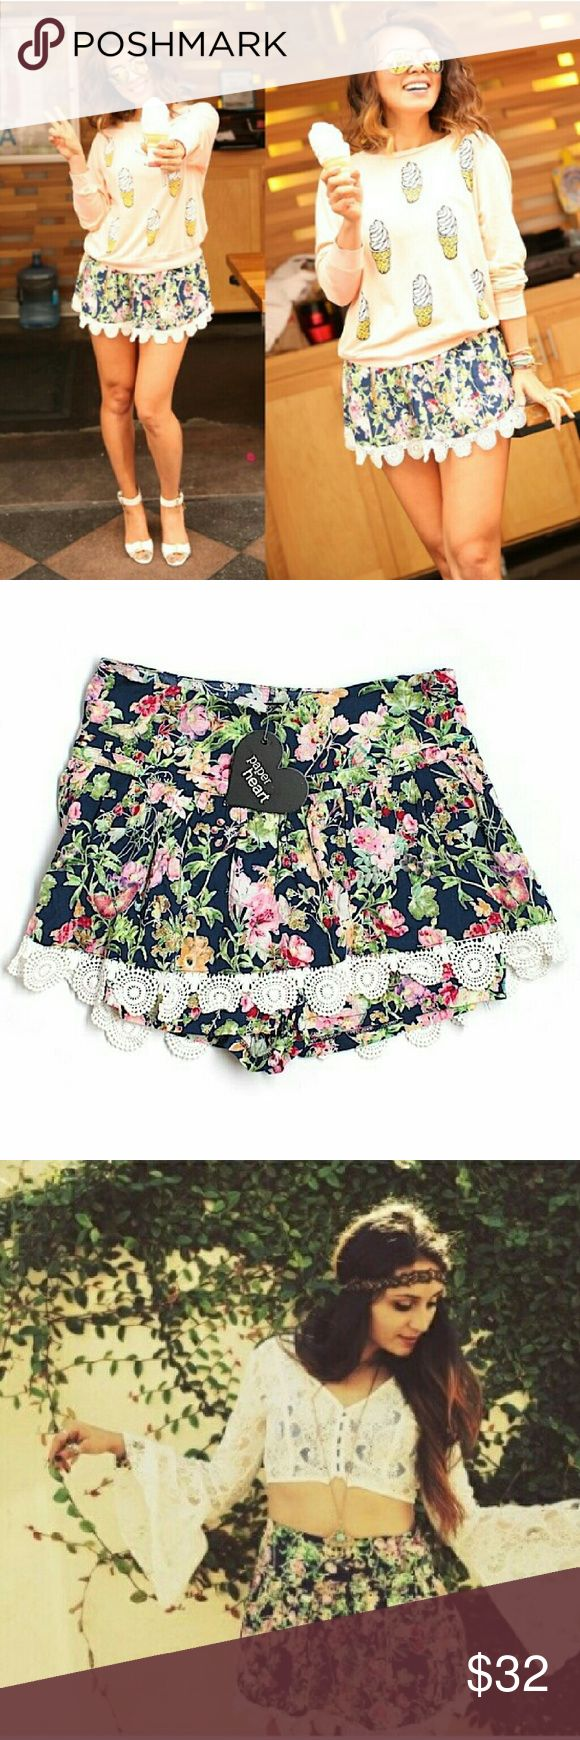 NWT LF XS S Navy Floral Crochet Hem Skort Shorts Brand new w/ tags. Girly boho festival skirted shorts in navy w/ pink, red, & green strawberry & butterfly floral print. Crochet hem detail. Side zip. 100% Viscose. Retailed at LF for $120. By Paper Heart. Selling several sizes. See comment for measurements.   I'm also selling this skort in different prints & sizes as well as bandeau top.   Please check out my closet for more NWT LF items to bundle w/ discount & save more with 1 shipping fee…